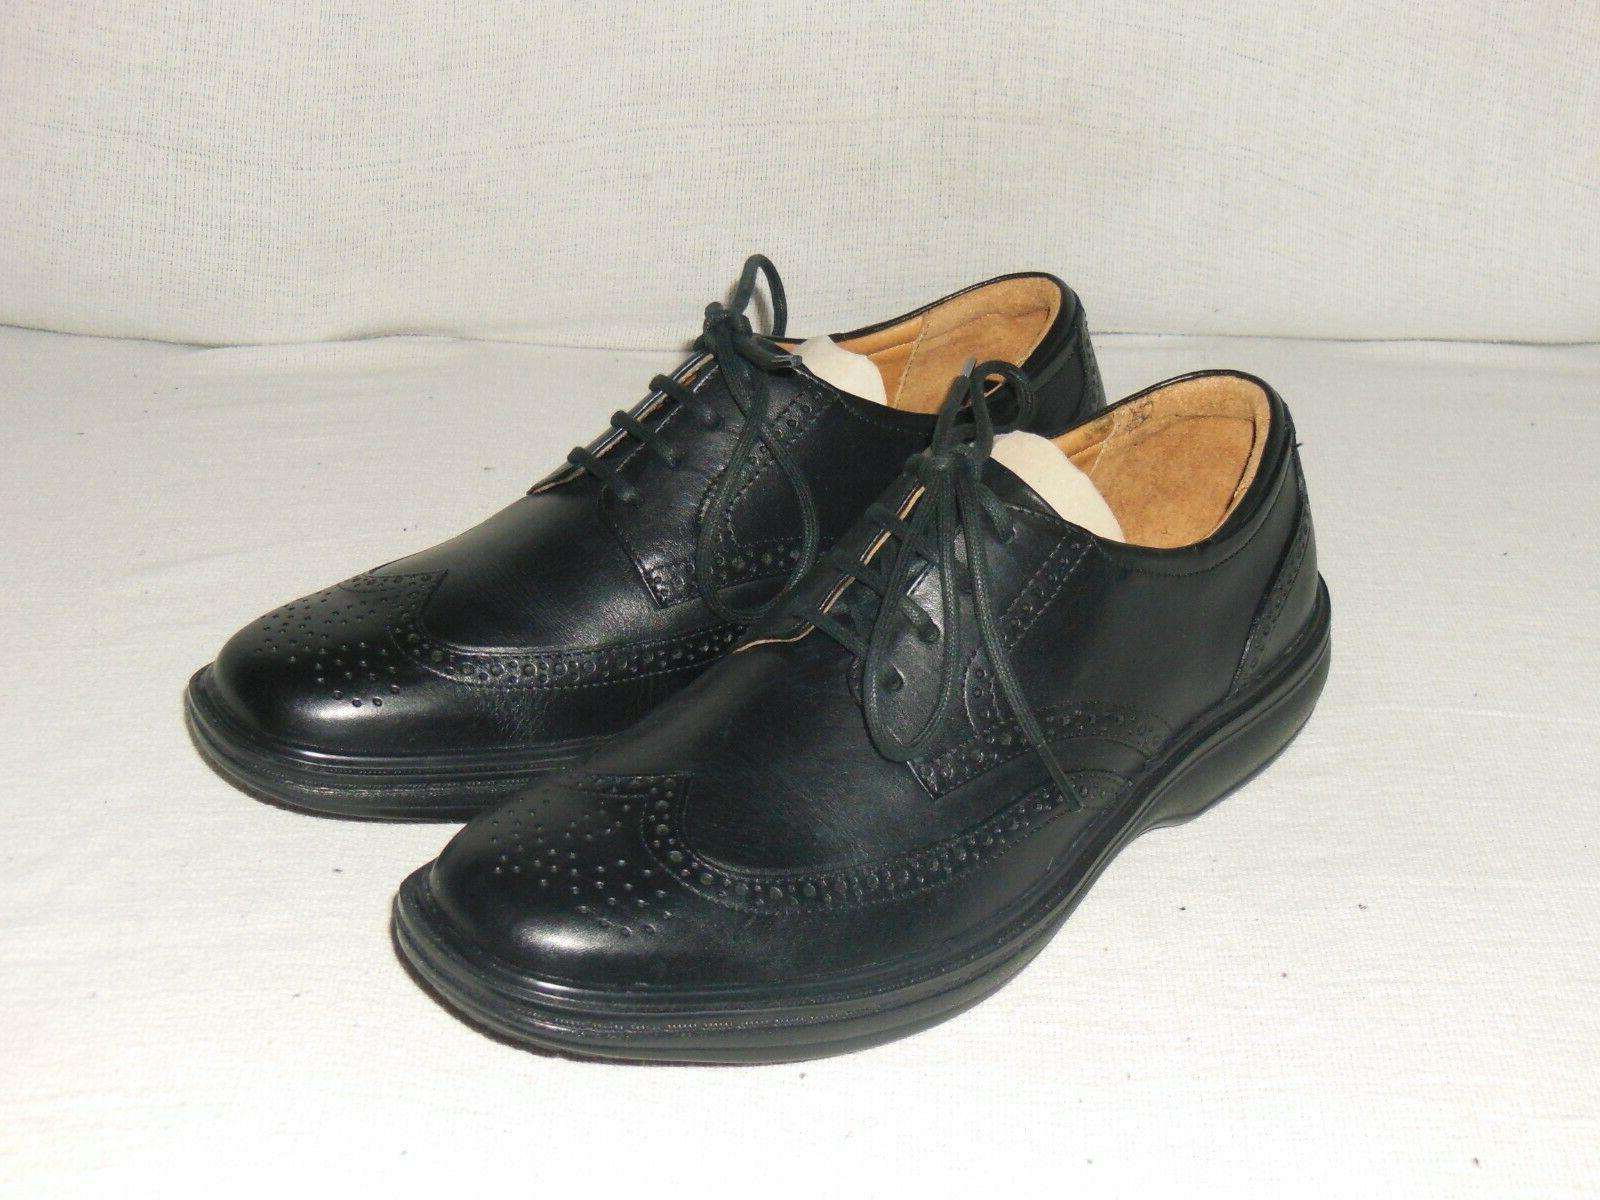 Dr. Therapeutic Extra Dress Shoes Men's M